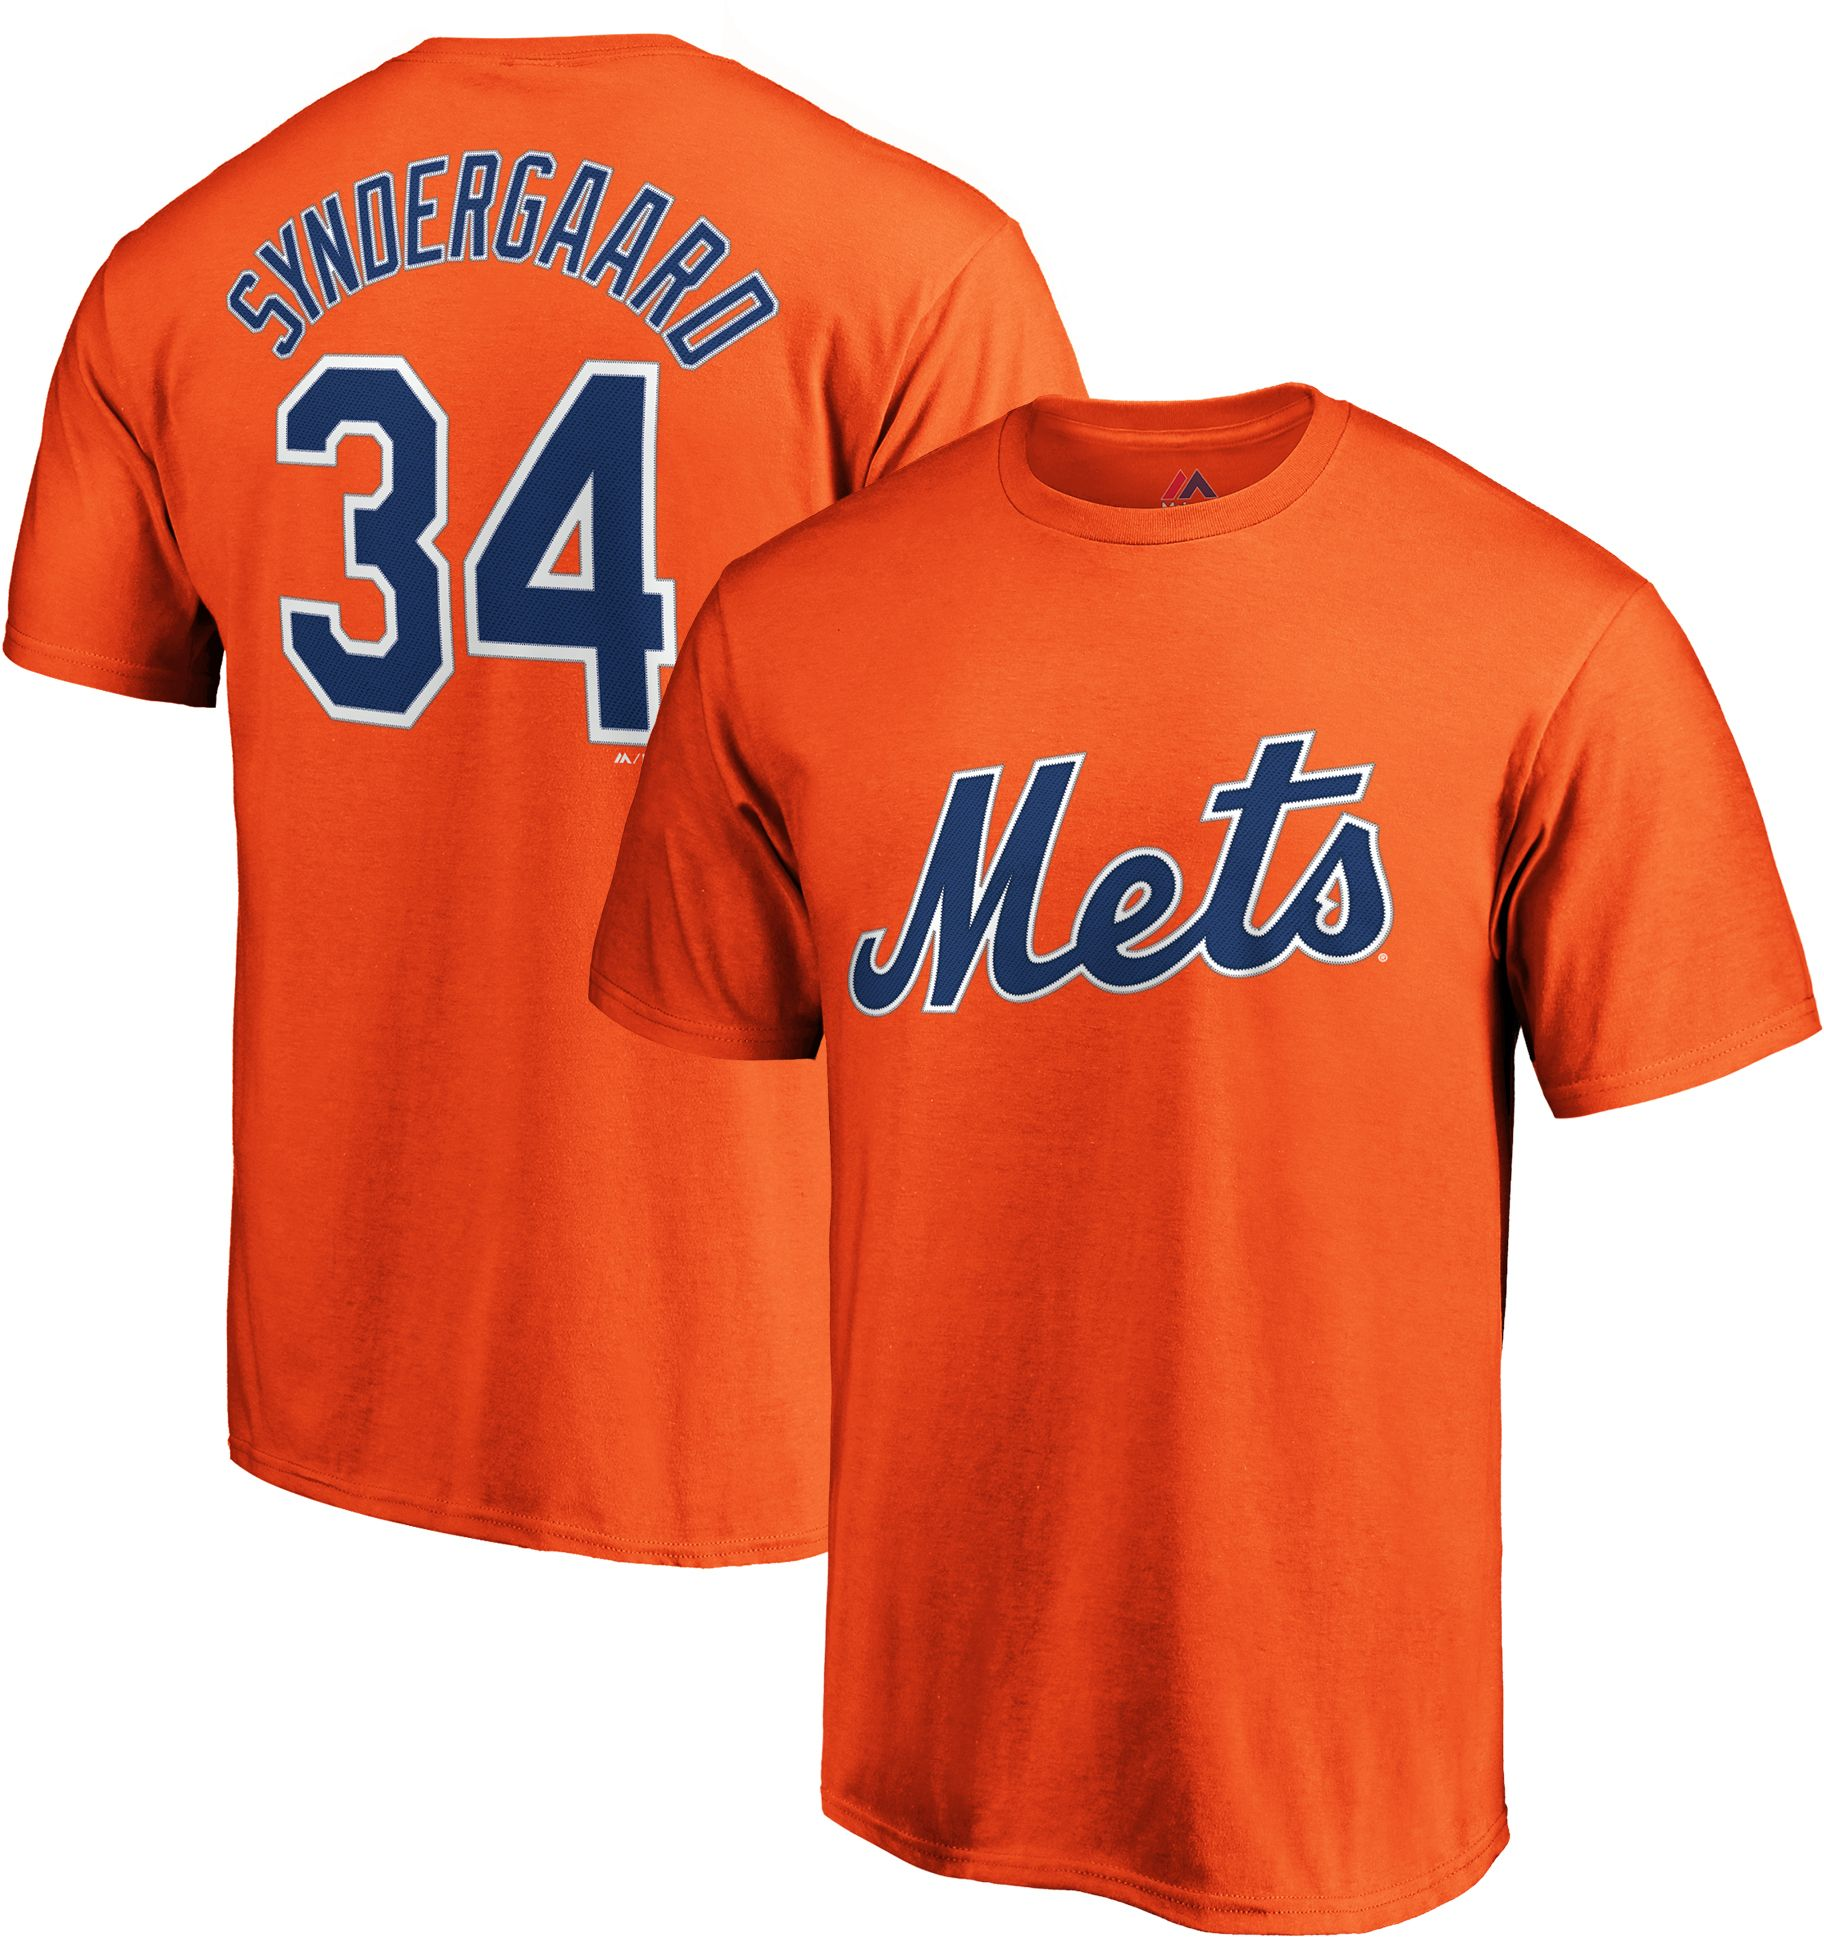 Majestic Men's New York Mets Noah Syndergaard #34 Orange T-Shirt